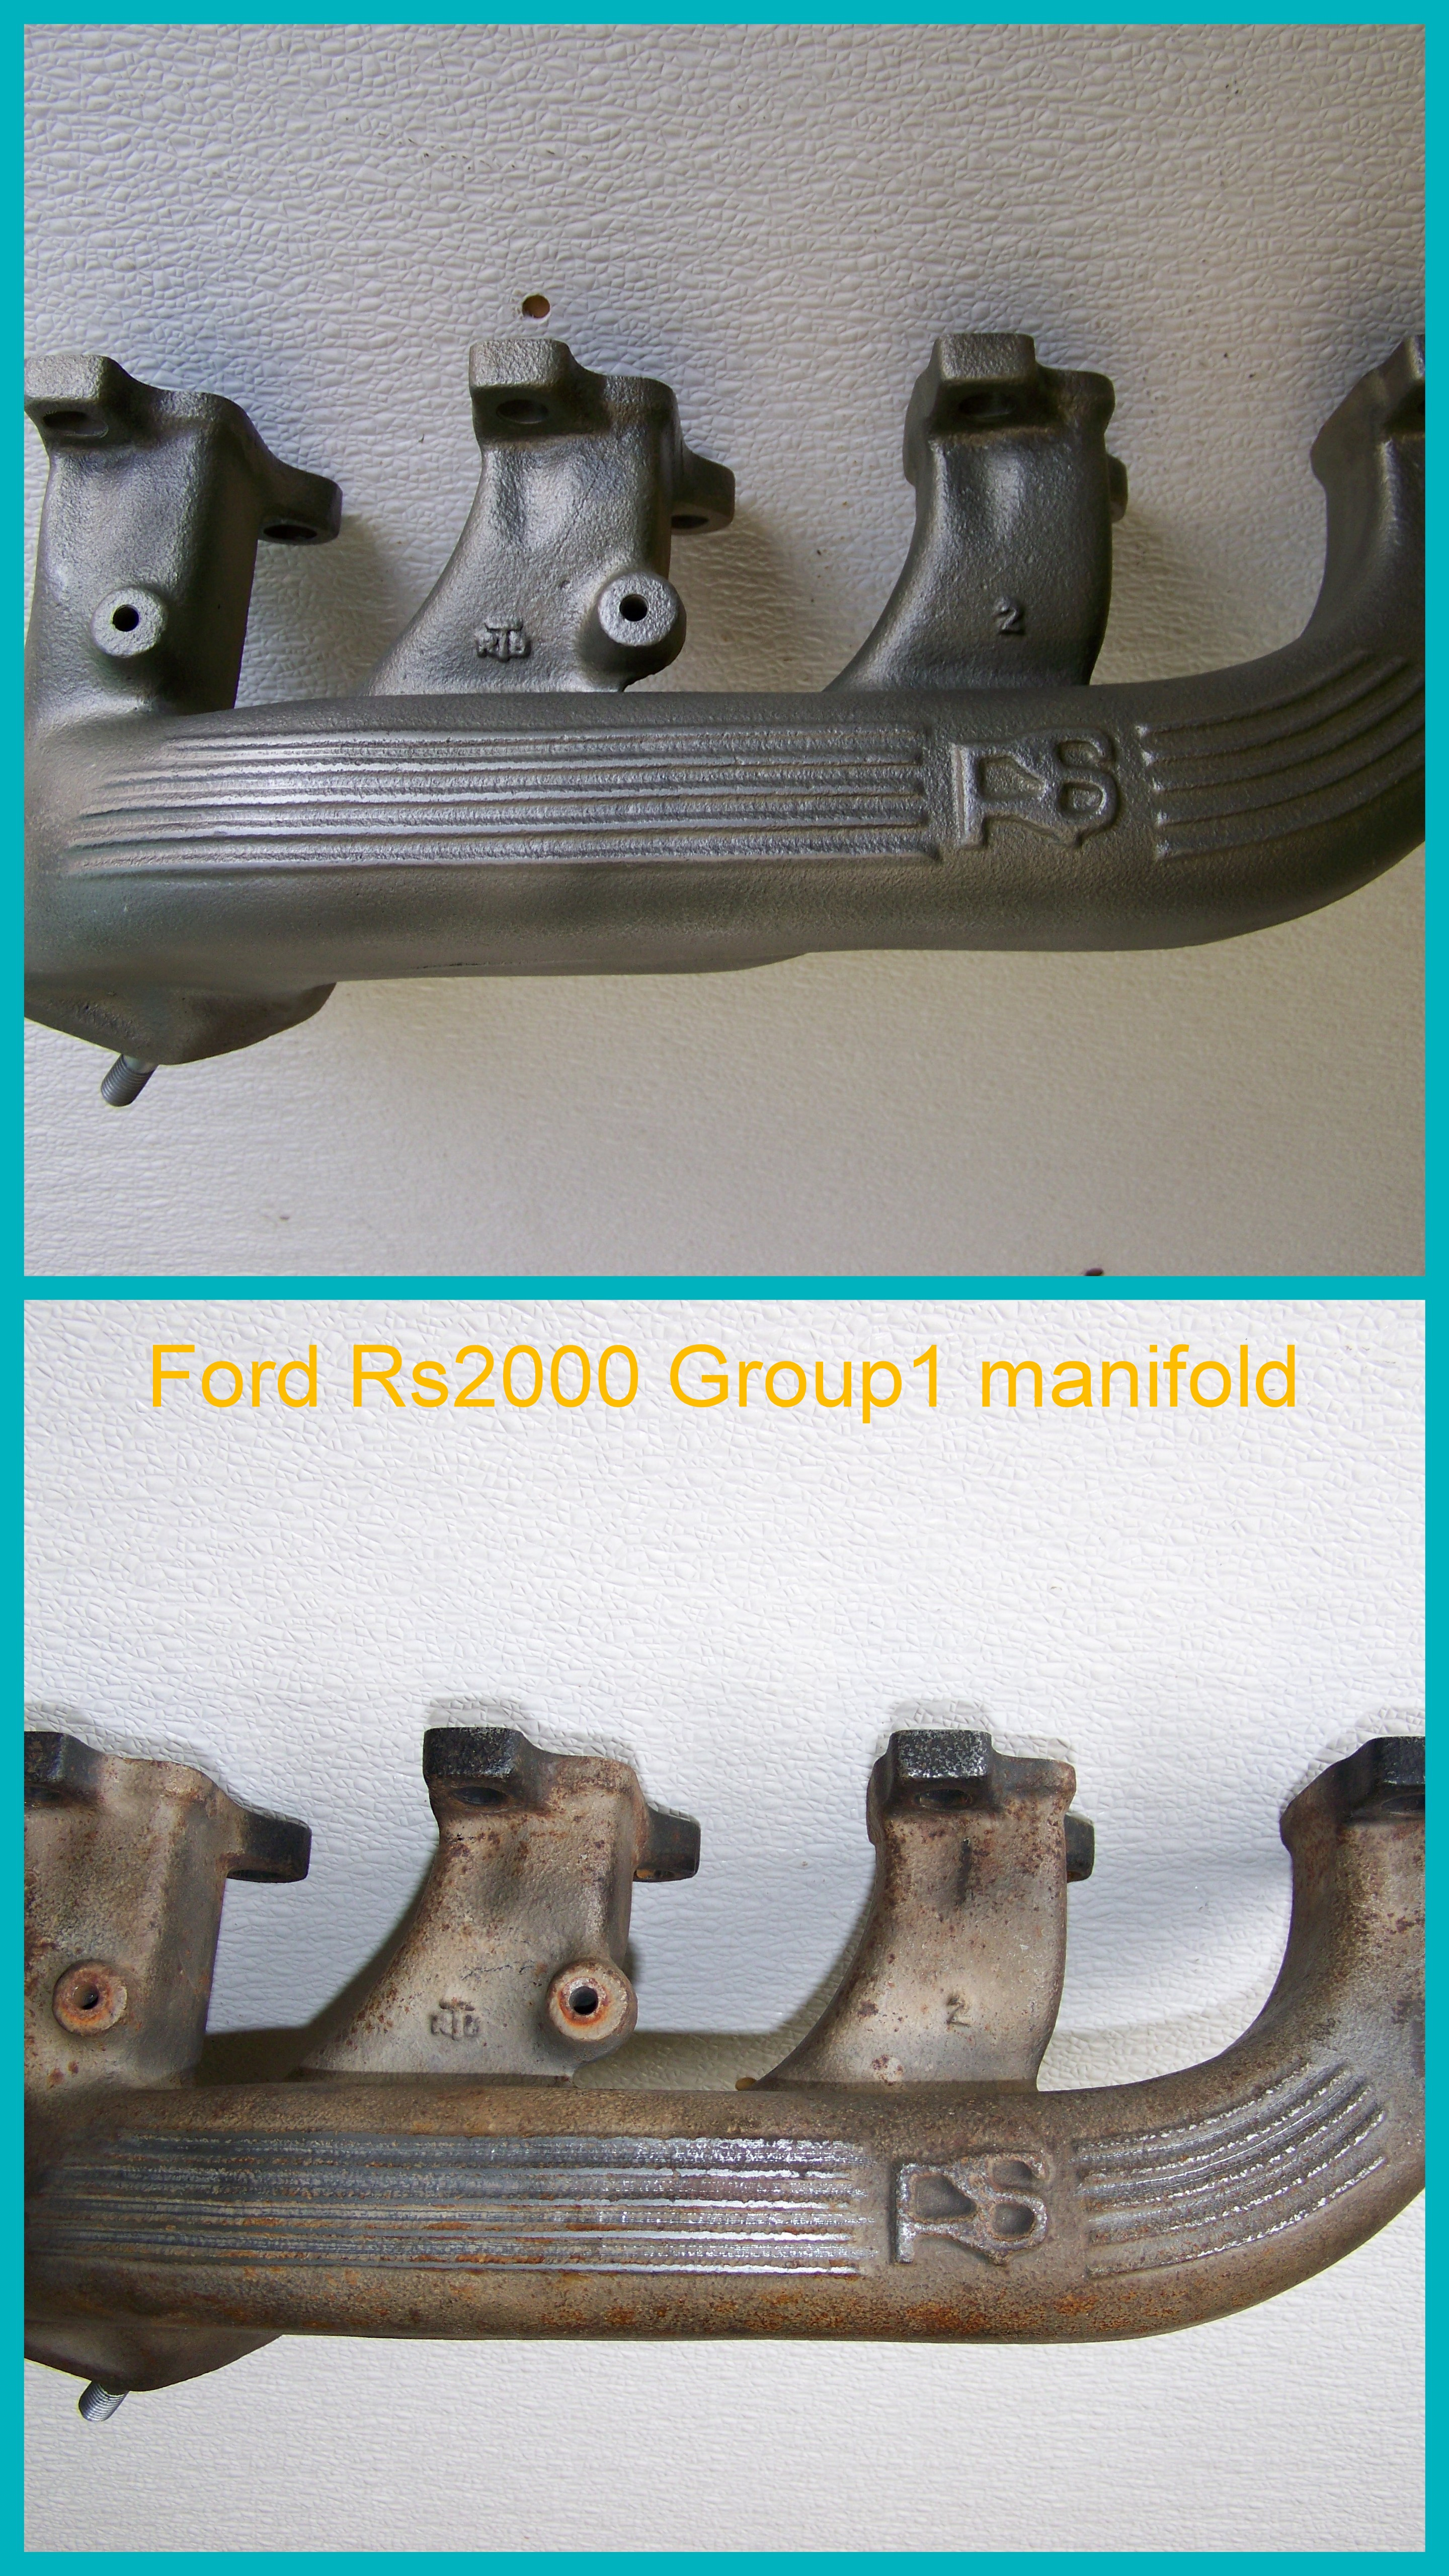 Ford RS200 Group1 manifold